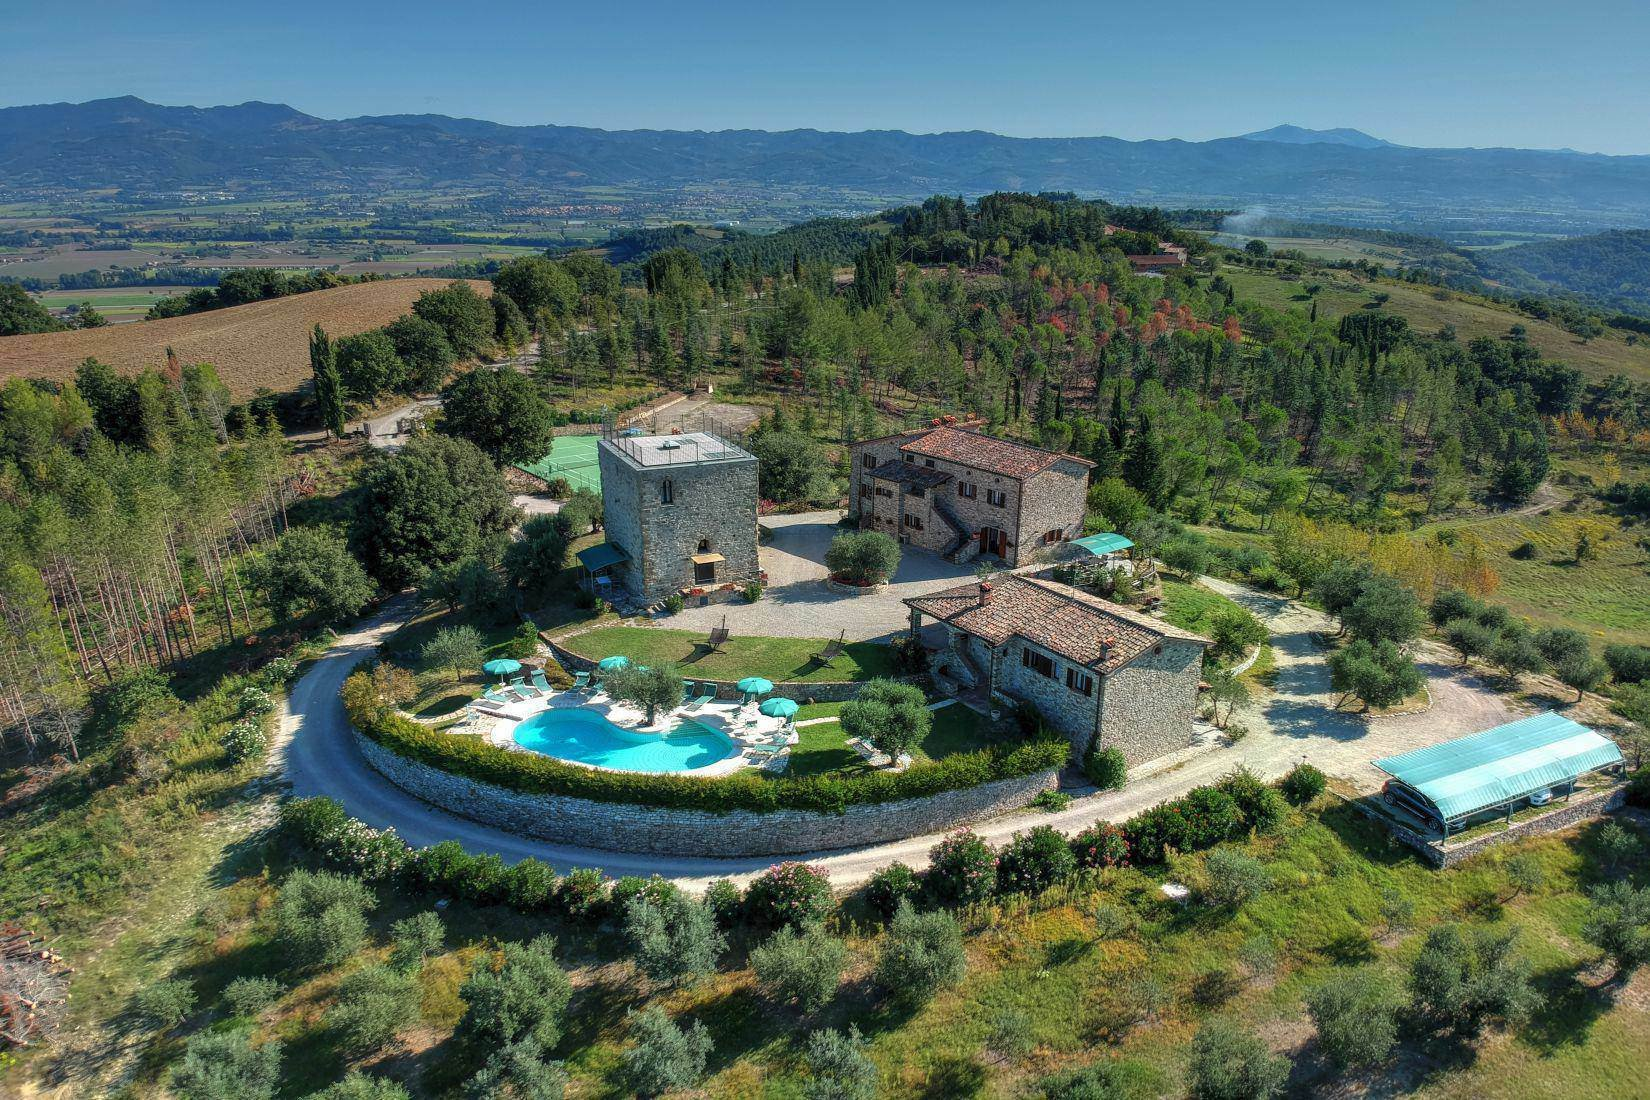 Country House in Monte Santa Maria Tiberina, Umbria, Italy 1